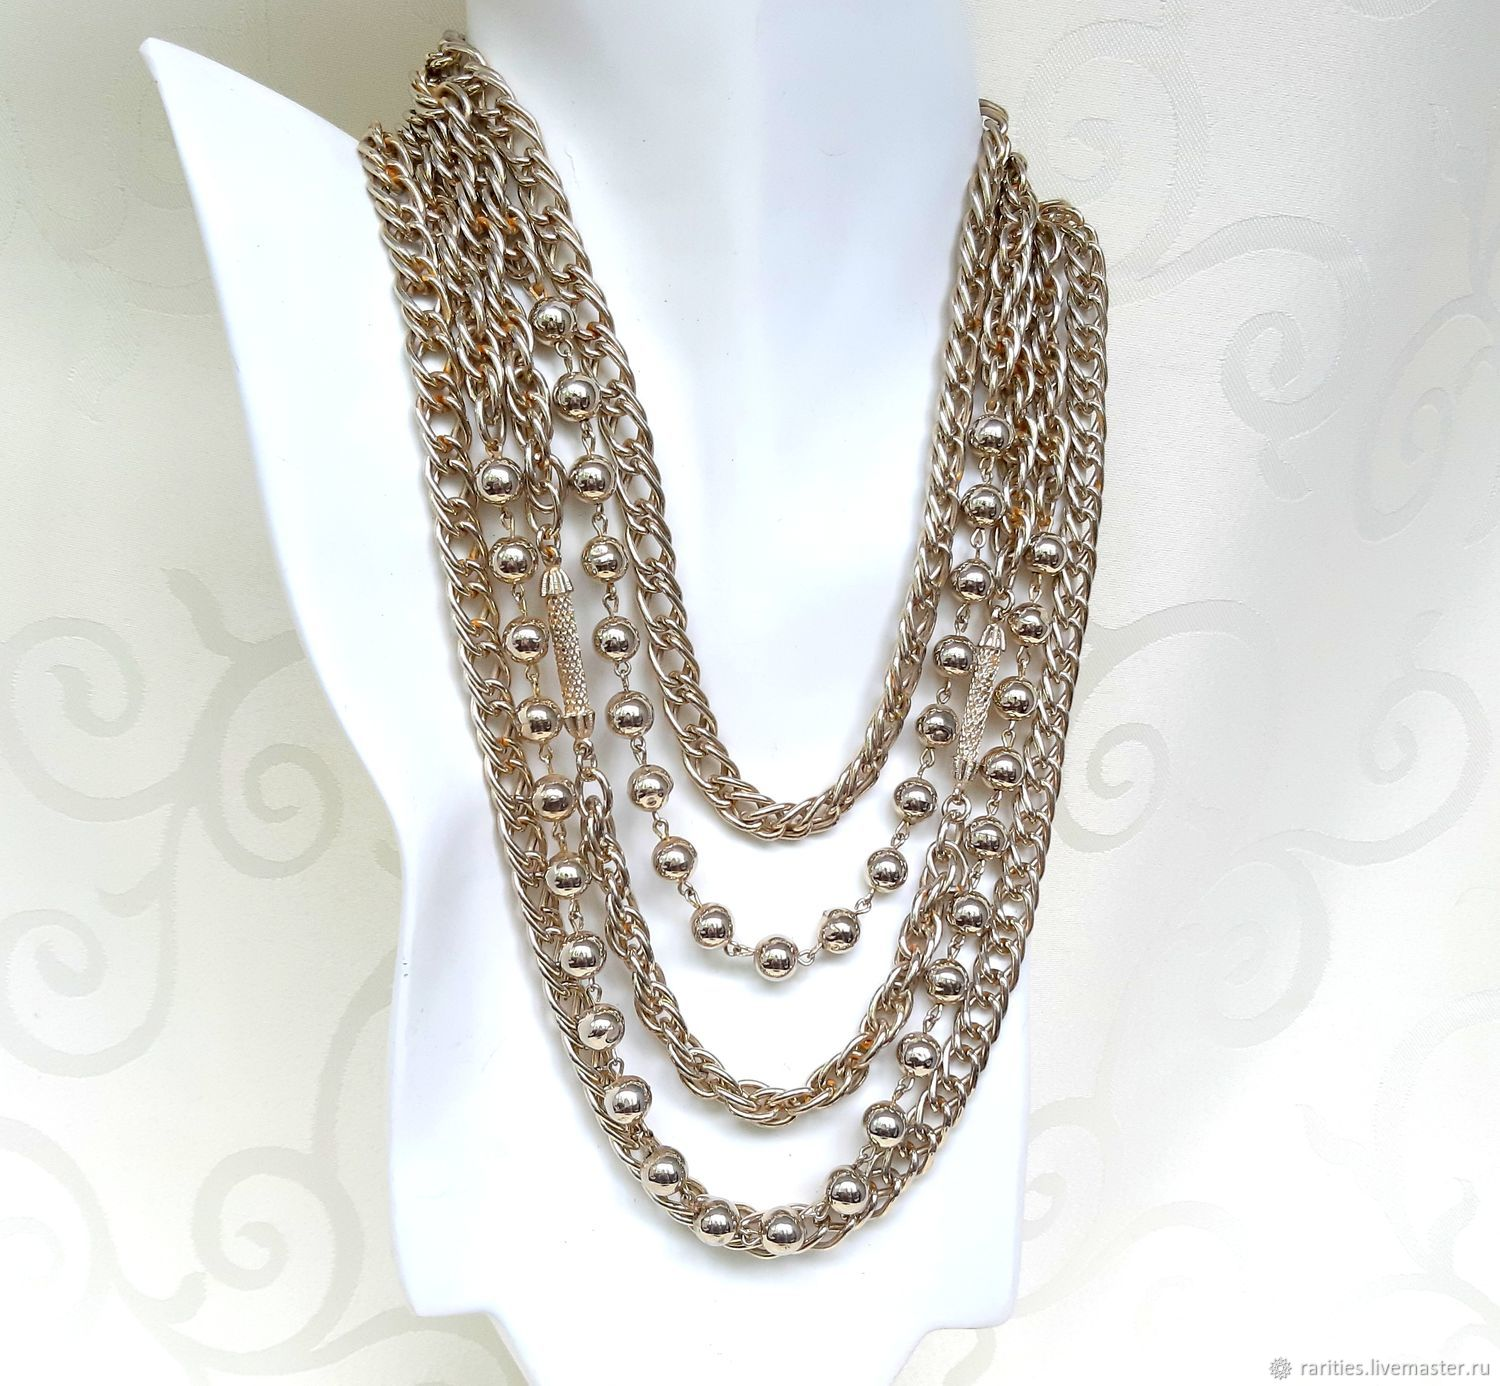 Chain necklace, KRAMER OF NEW YORK, USA, ,60s, Vintage necklace, Moscow,  Фото №1